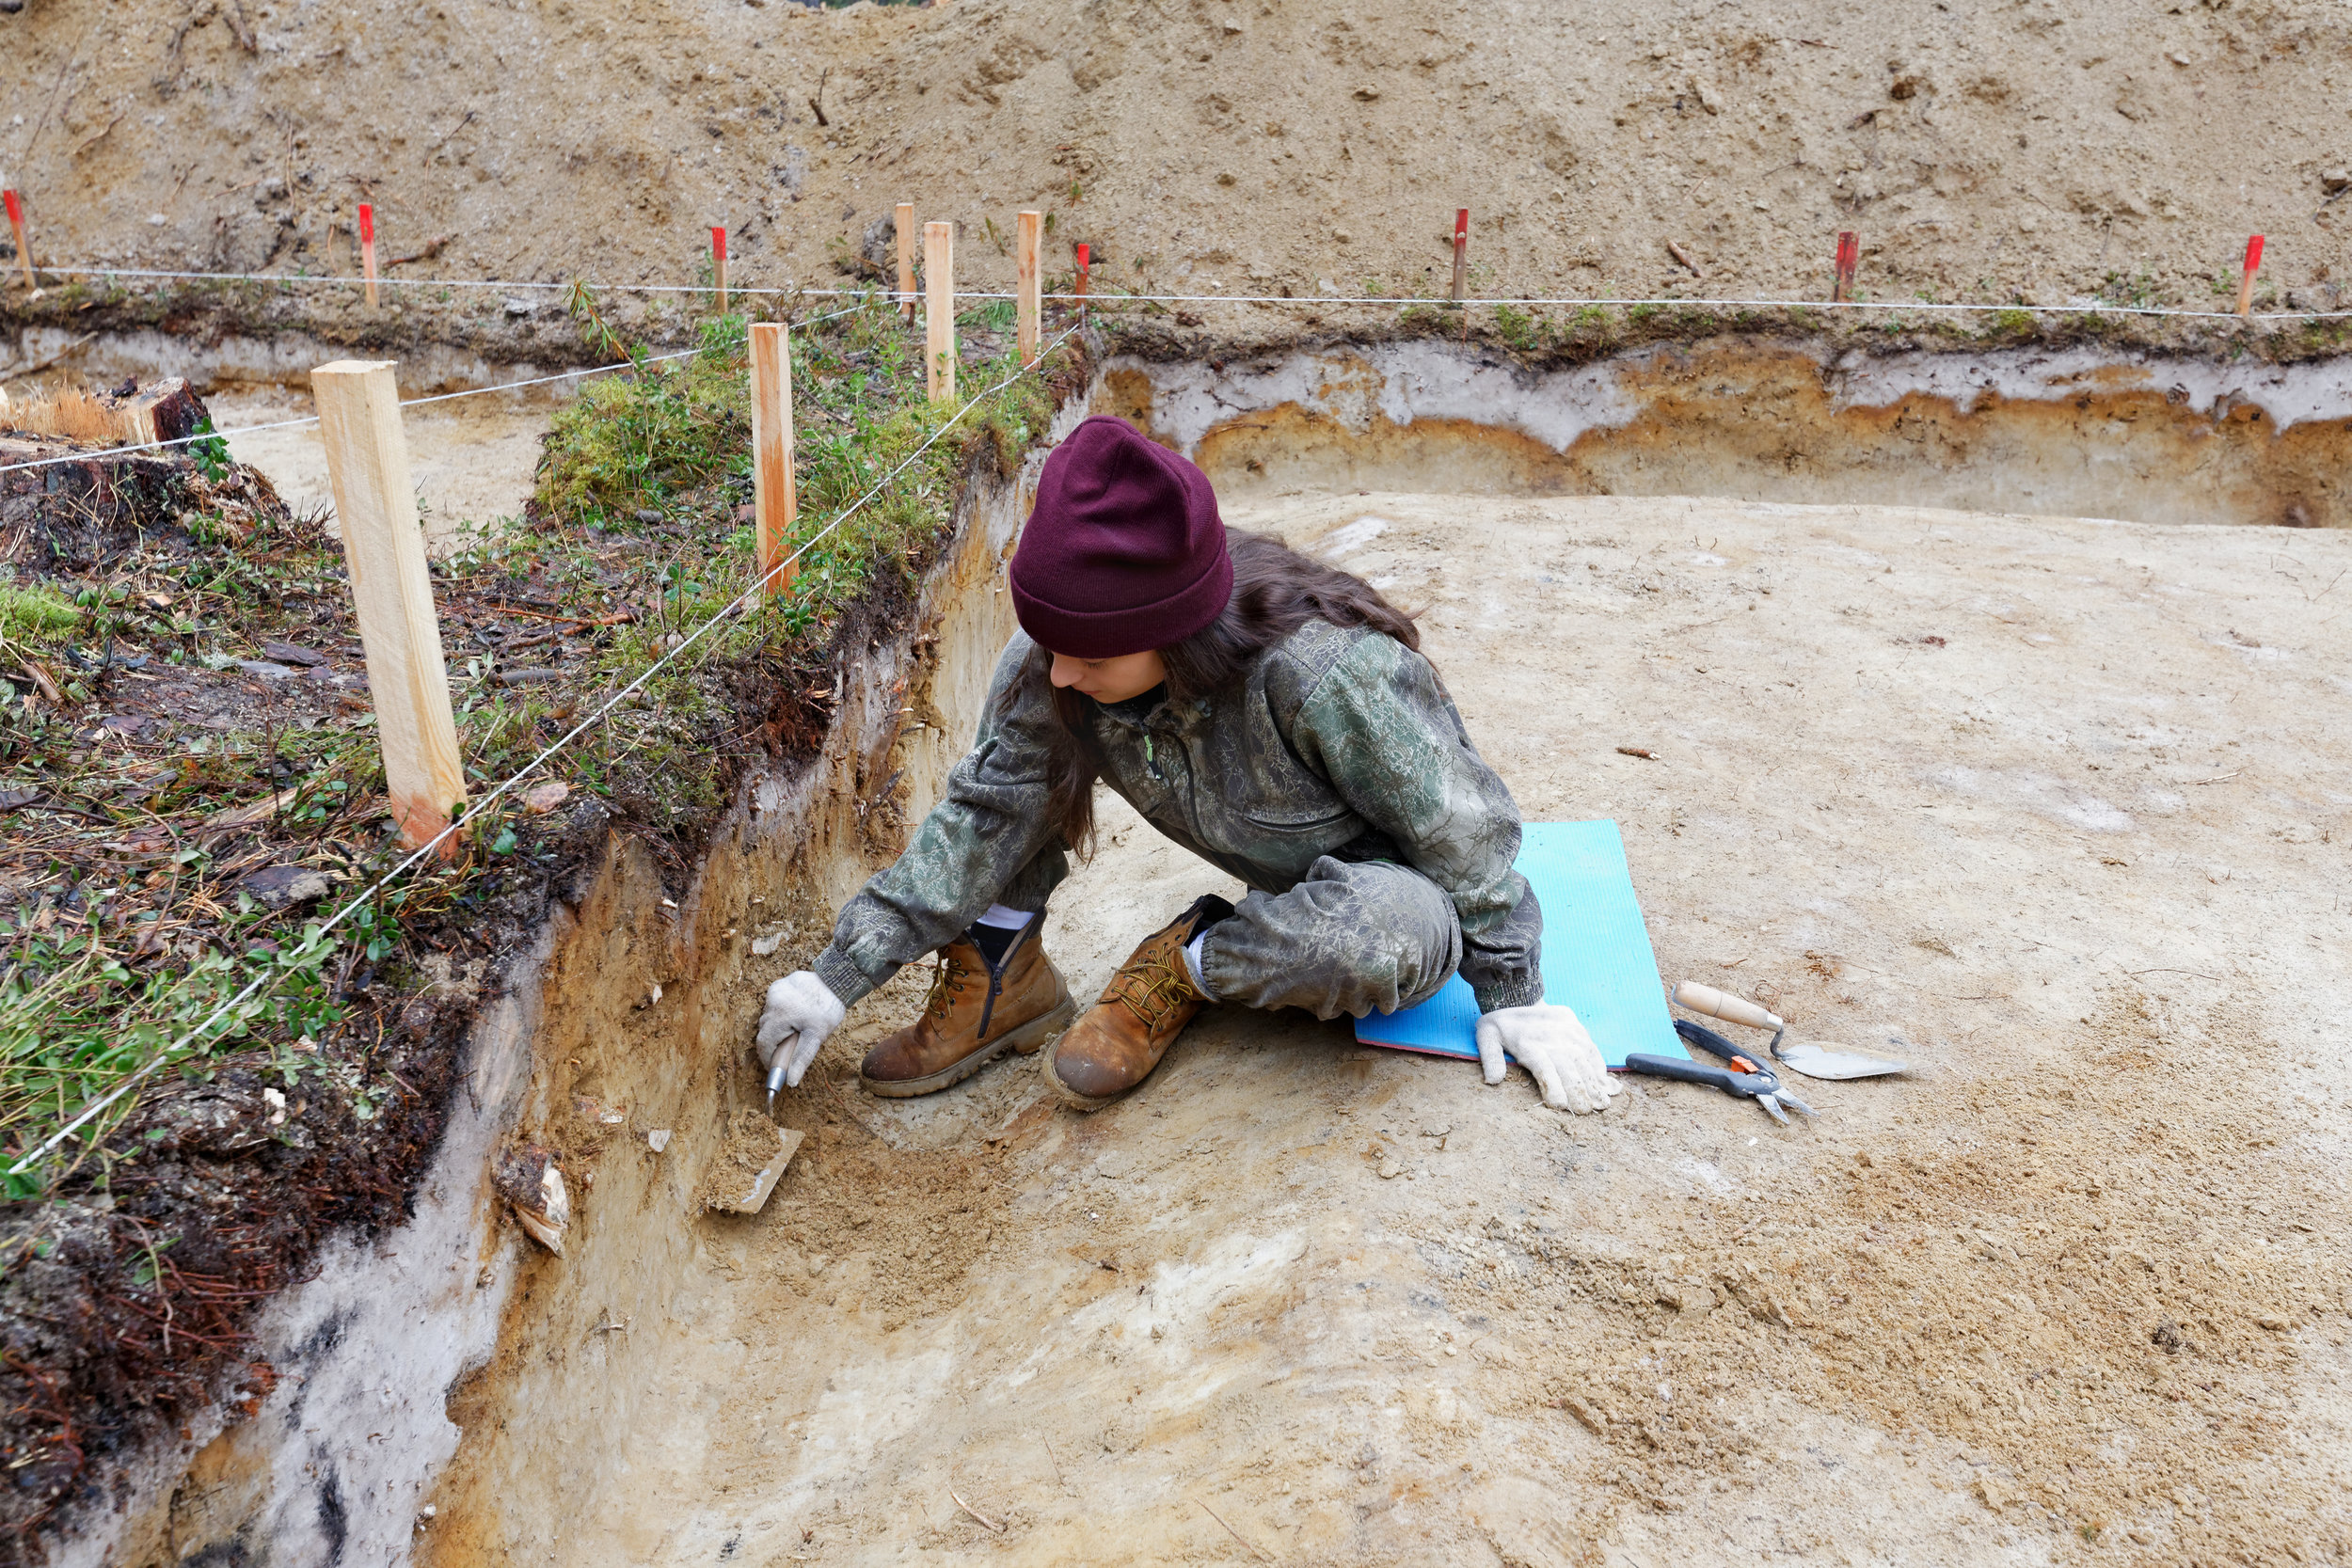 DigIt2017 will offer opportunities for visitors to Scotland to see and possibly participate in real archaeological digs.